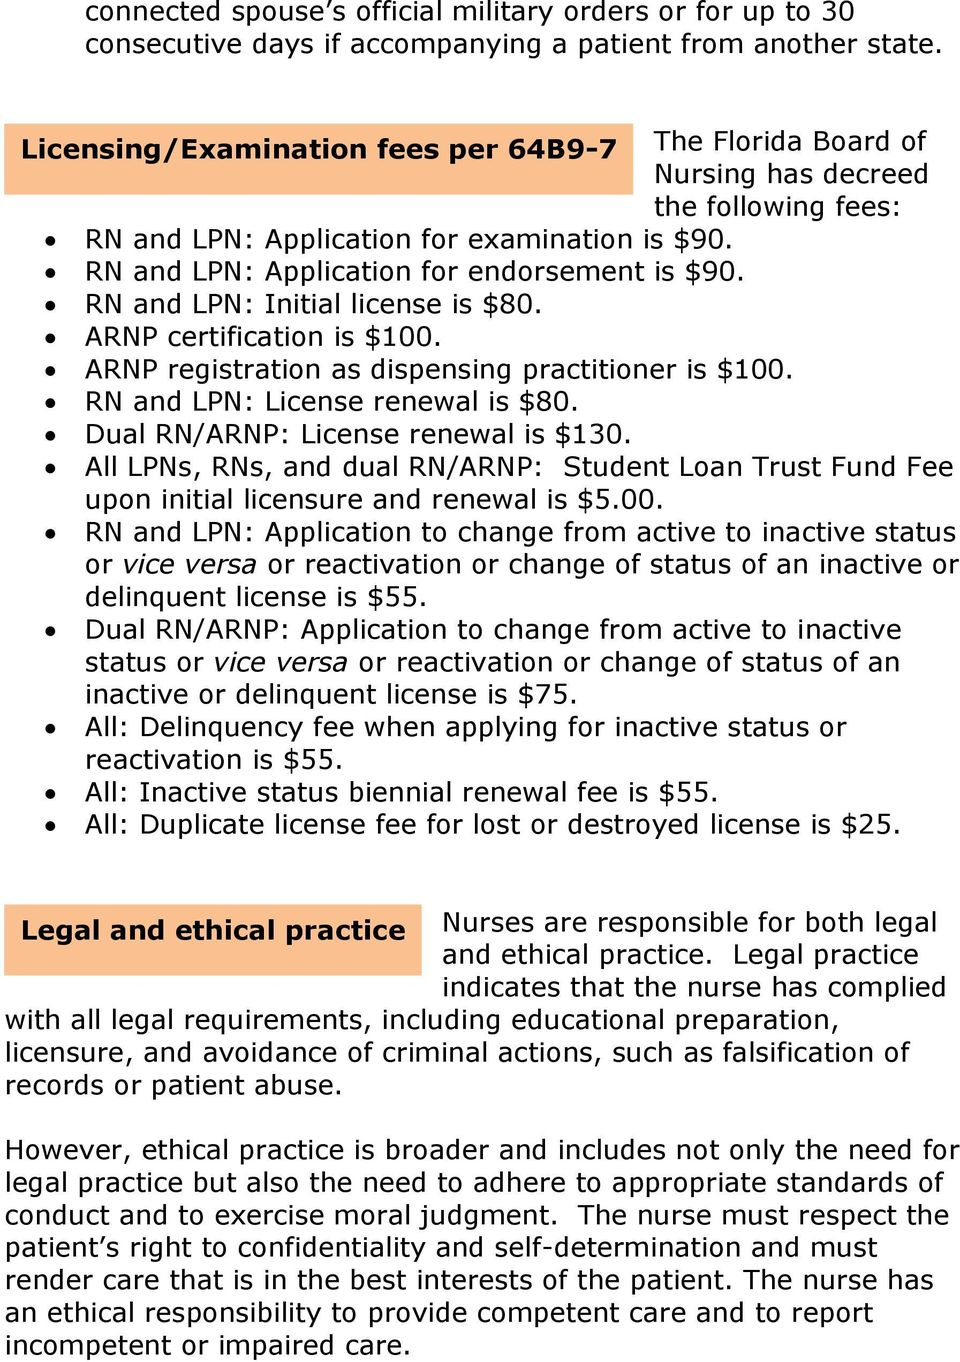 RN and LPN: Initial license is $80. ARNP certification is $100. ARNP registration as dispensing practitioner is $100. RN and LPN: License renewal is $80. Dual RN/ARNP: License renewal is $130.